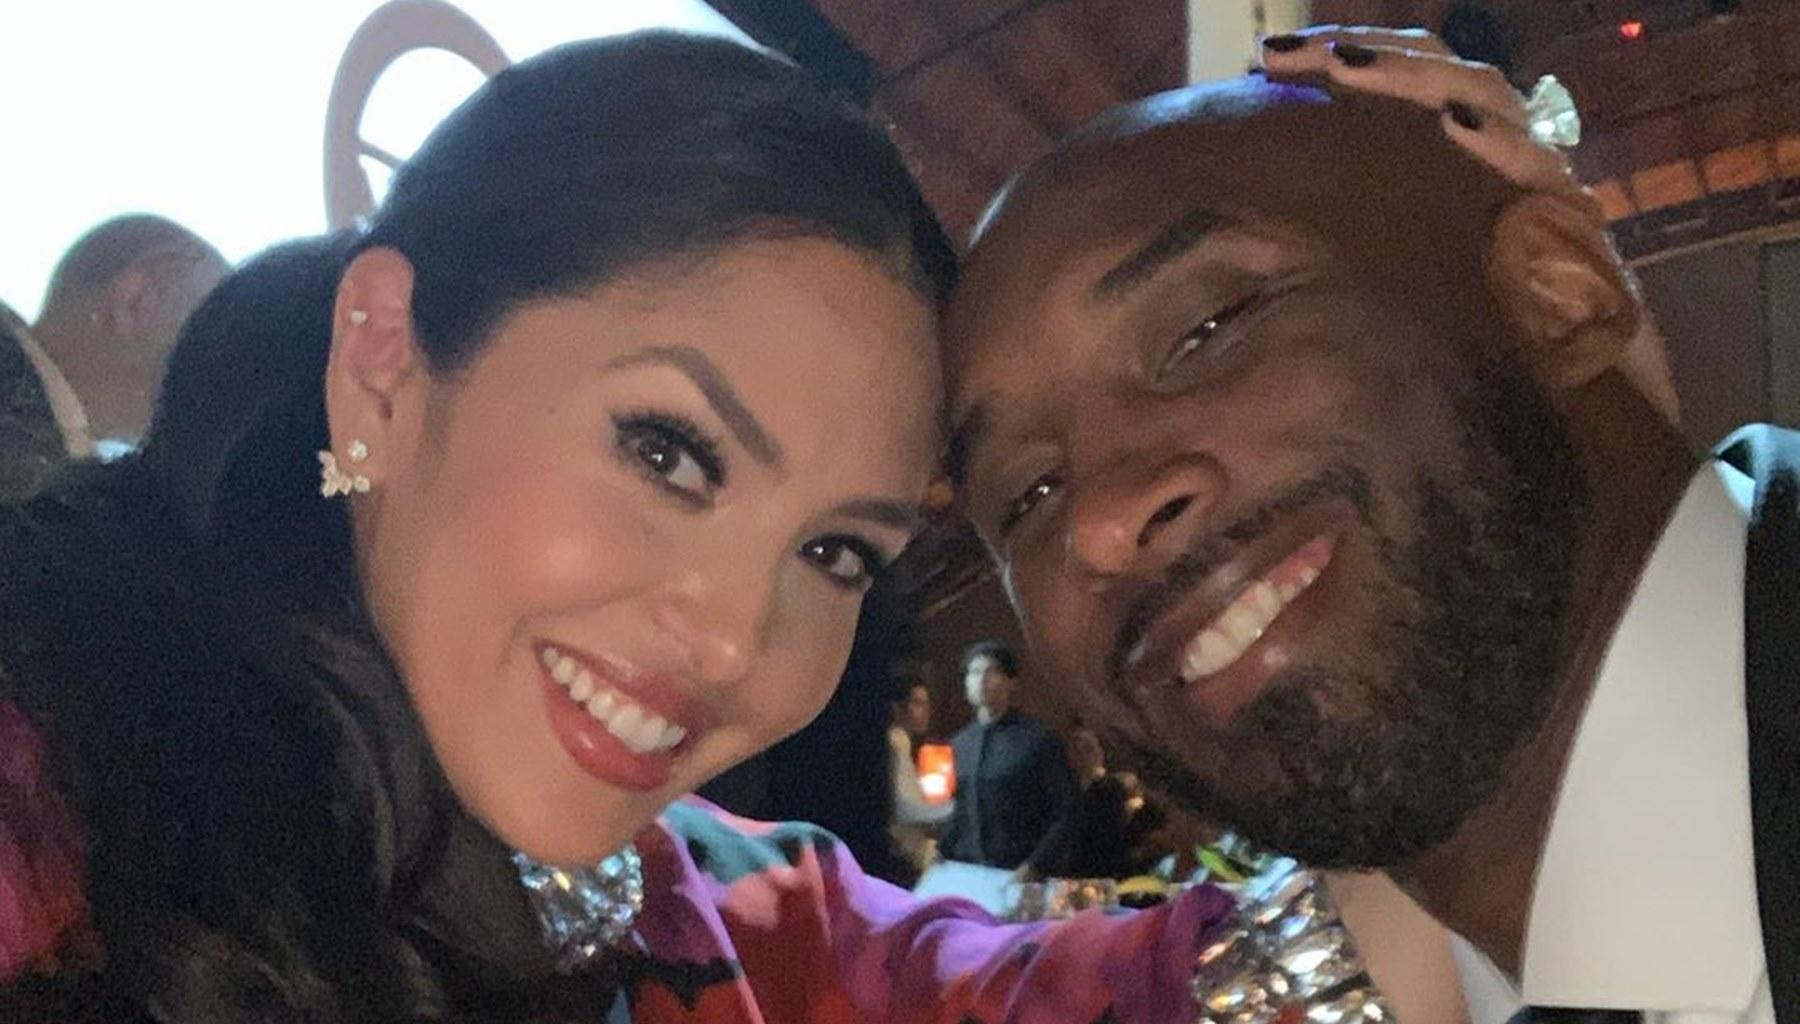 Vanessa Bryant Reveals Her One Wish After The Deaths Of Husband Kobe And Daughter Gianna Bryant